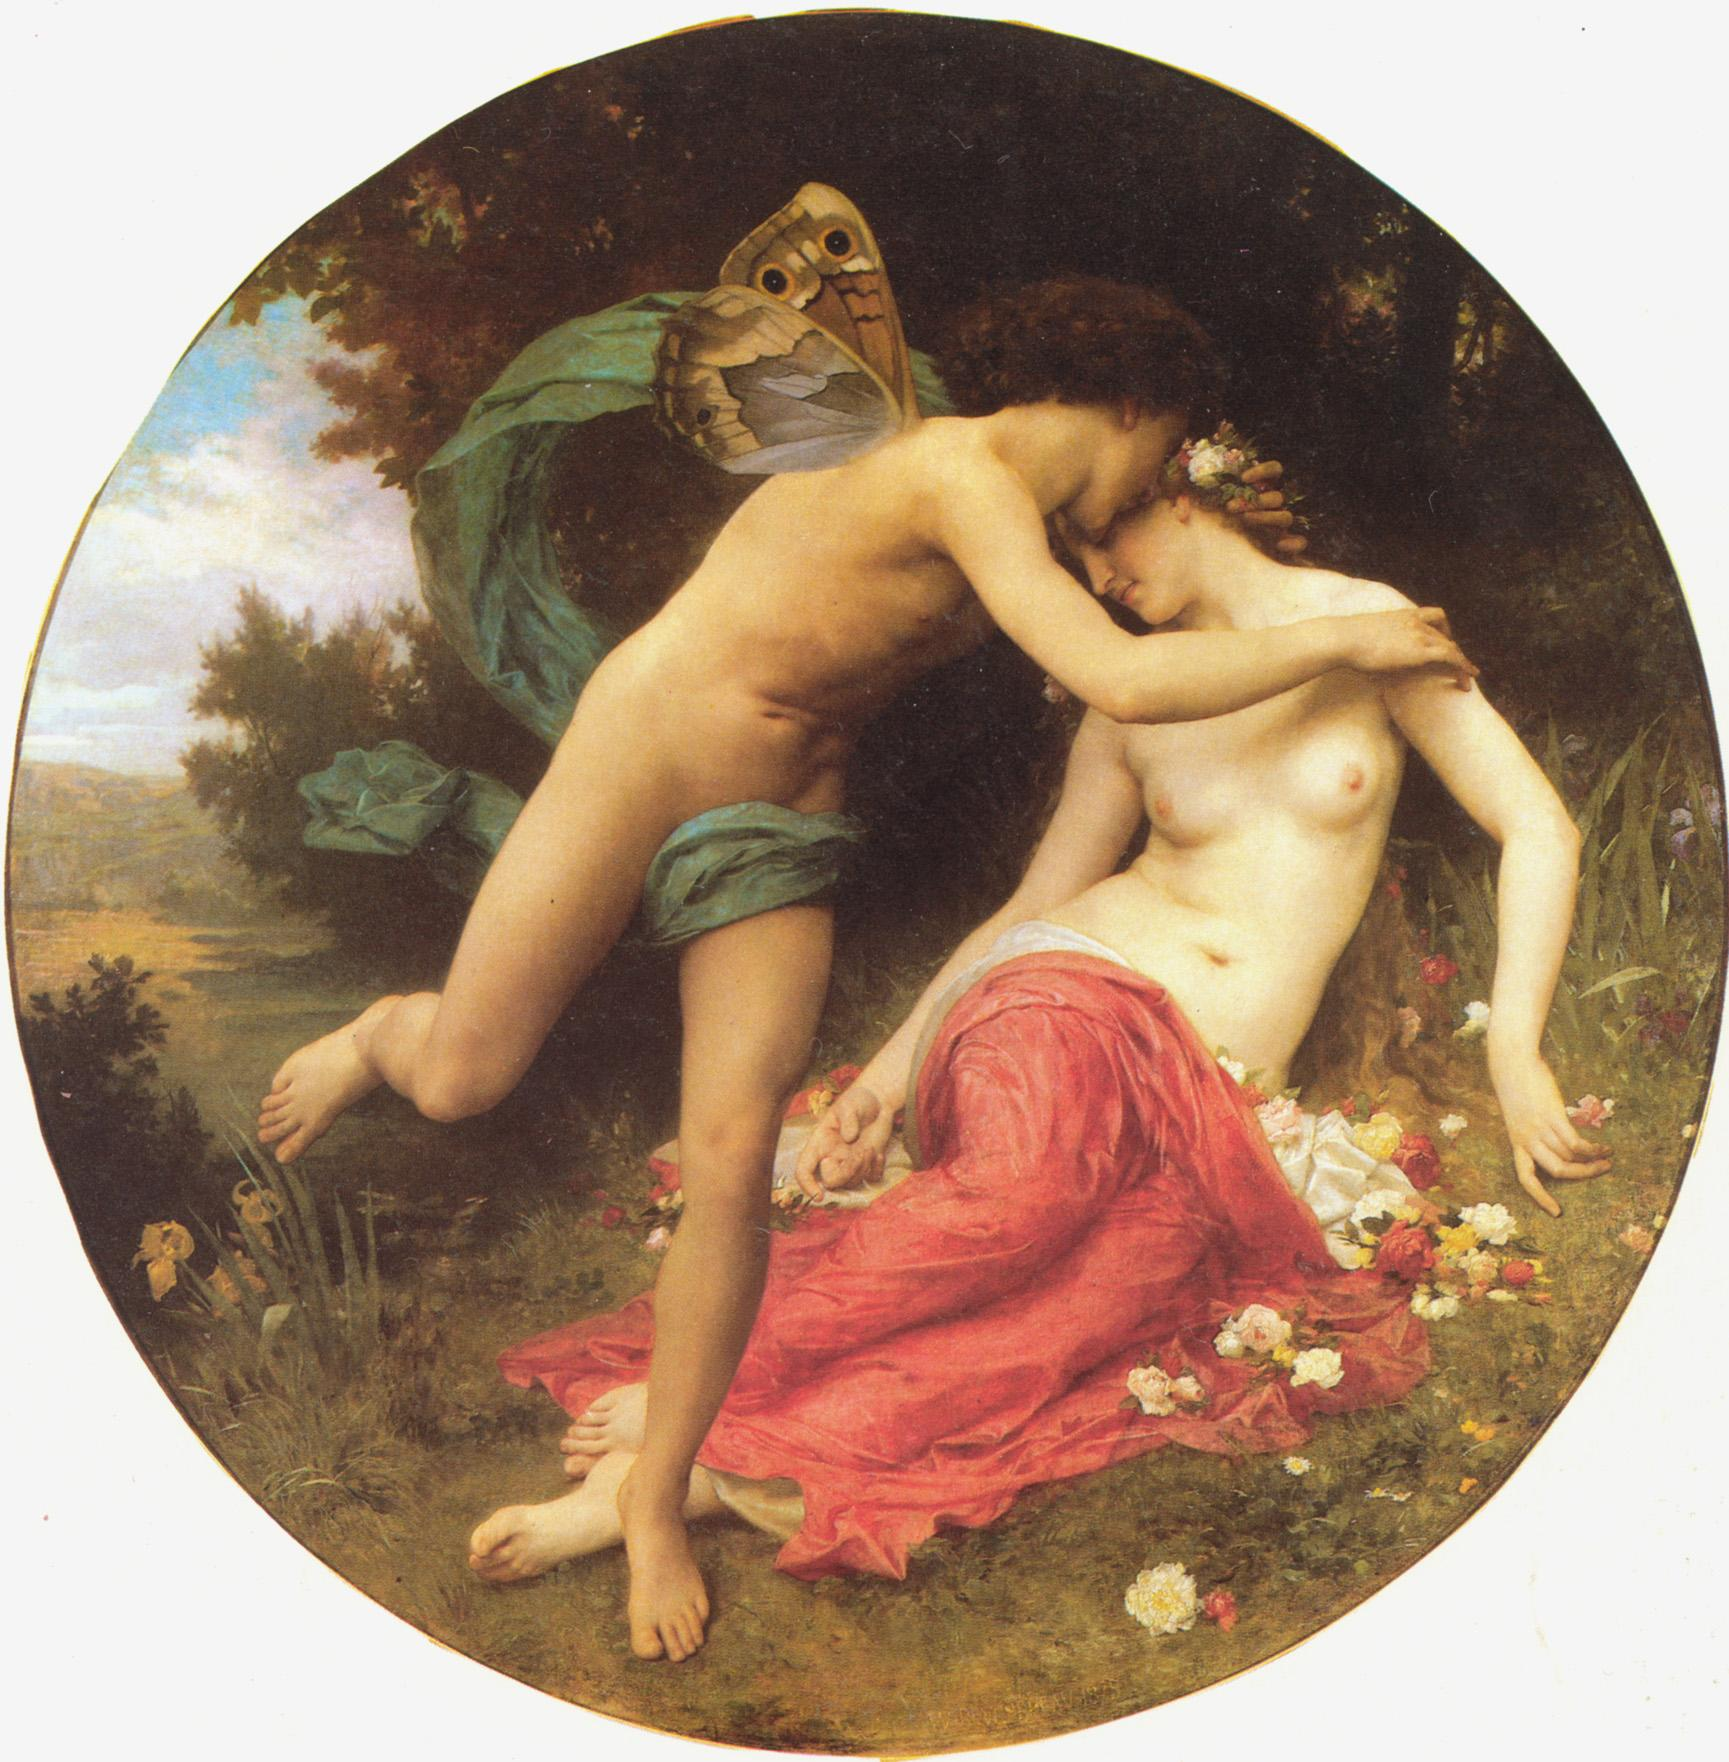 William-Adolphe_Bouguereau_(1825-1905)_-_Flora_And_Zephyr_(1875).jpg (1729×1762)